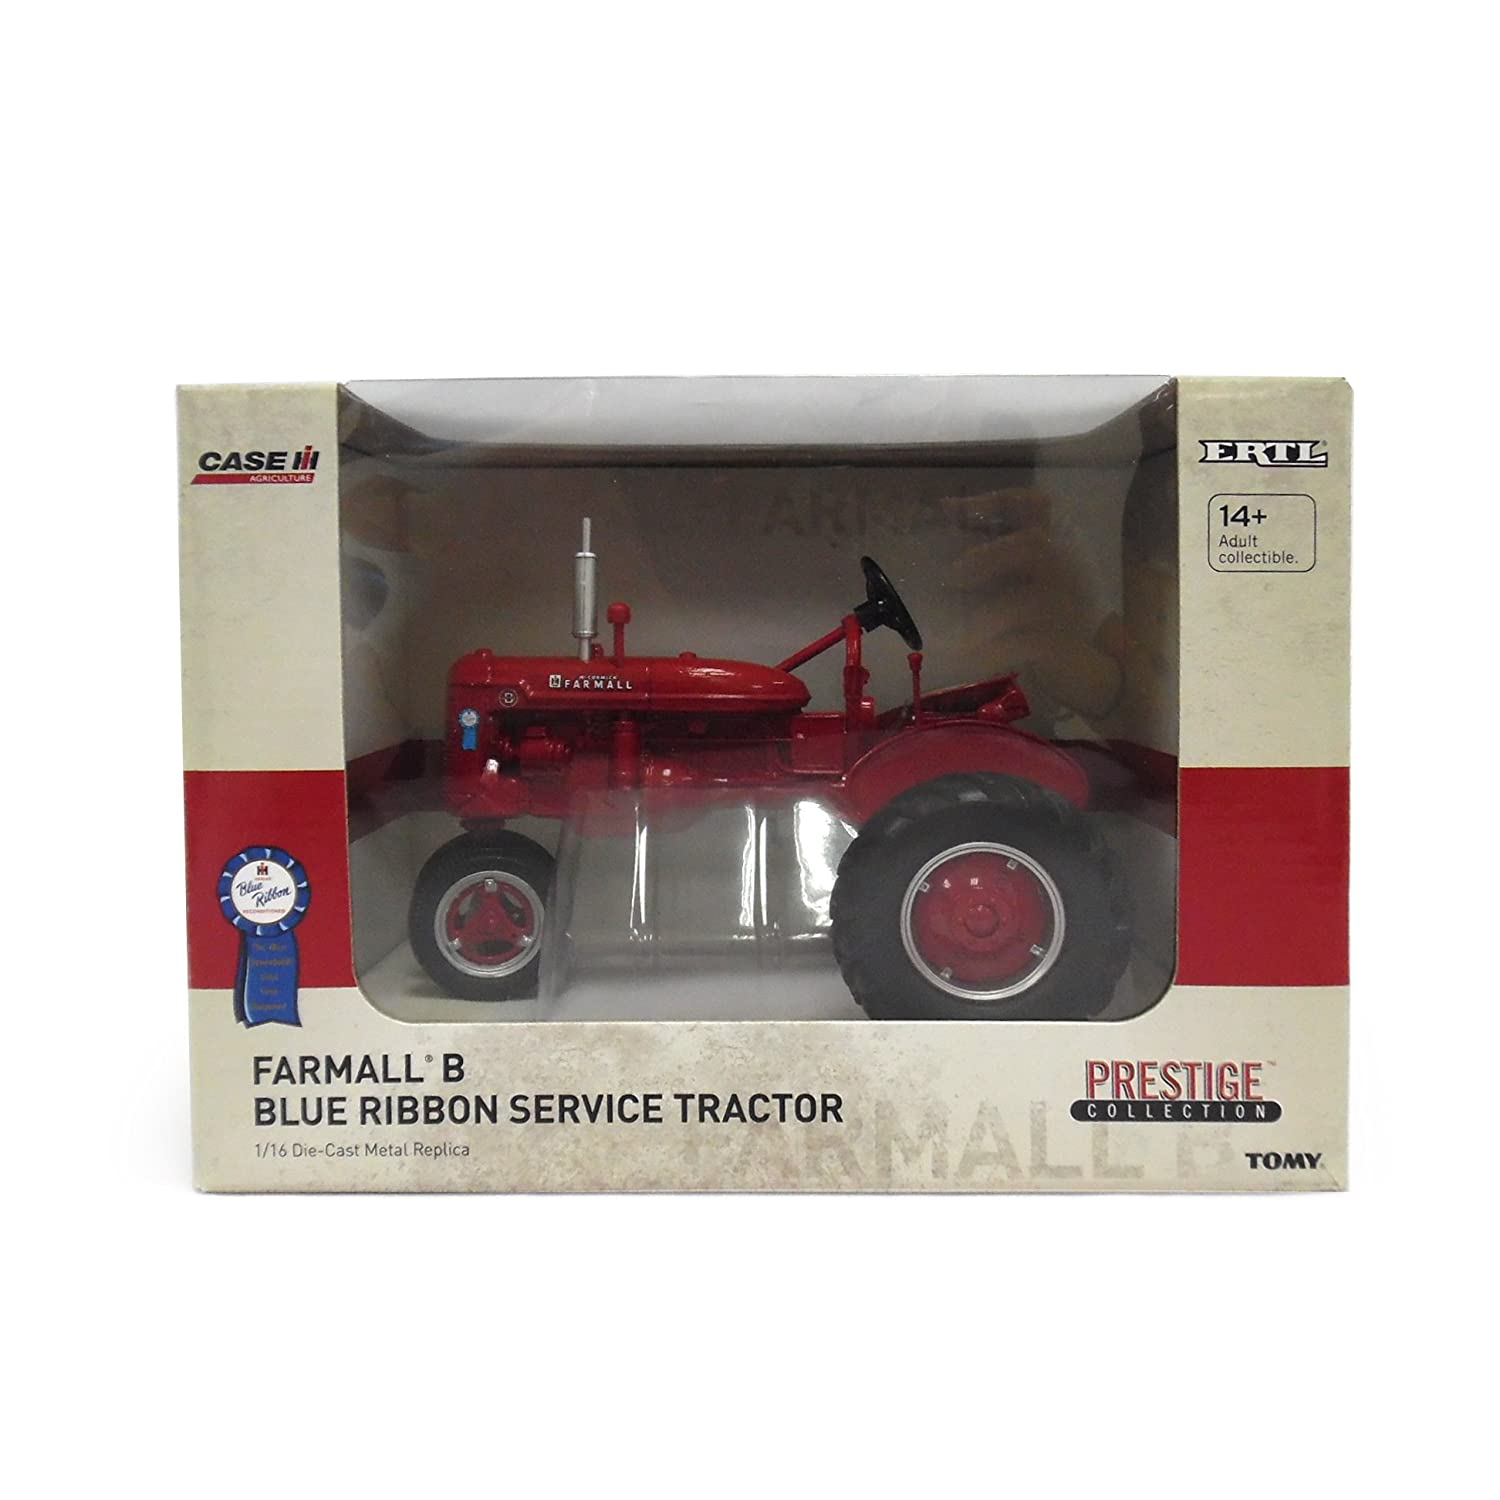 Farmall B Accessories Wiring Diagrams Md Diagram Amazon Com Ertl Tractor 1 16 Scale Toys Games Bn